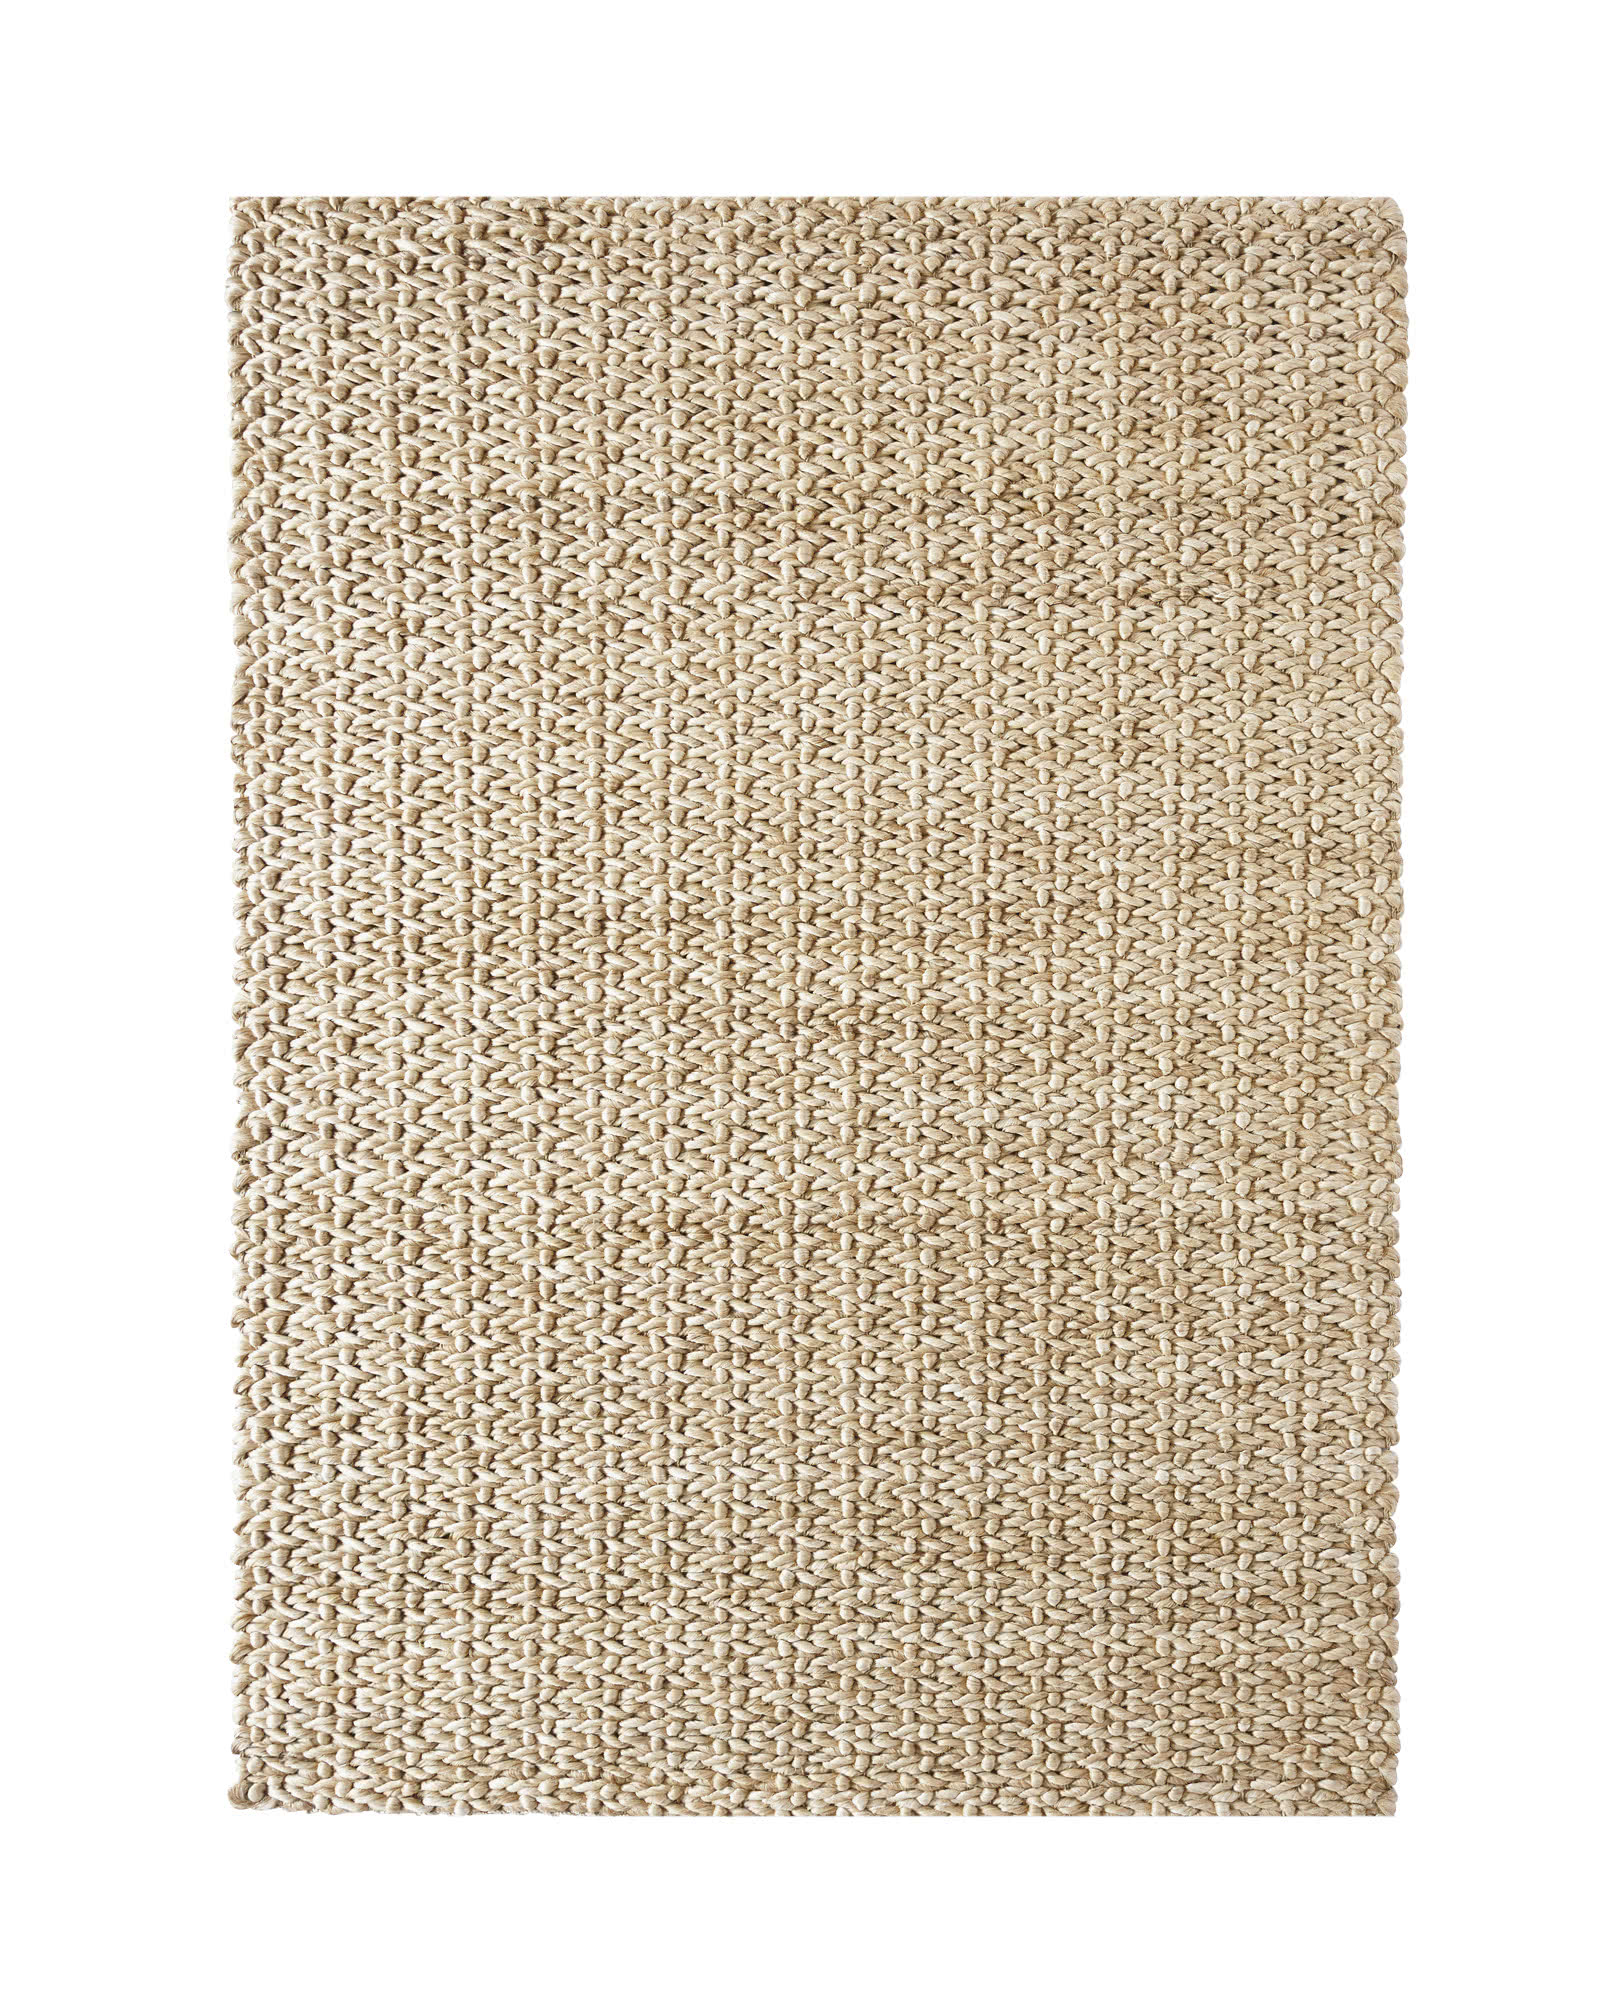 Twisted Abaca Rug,